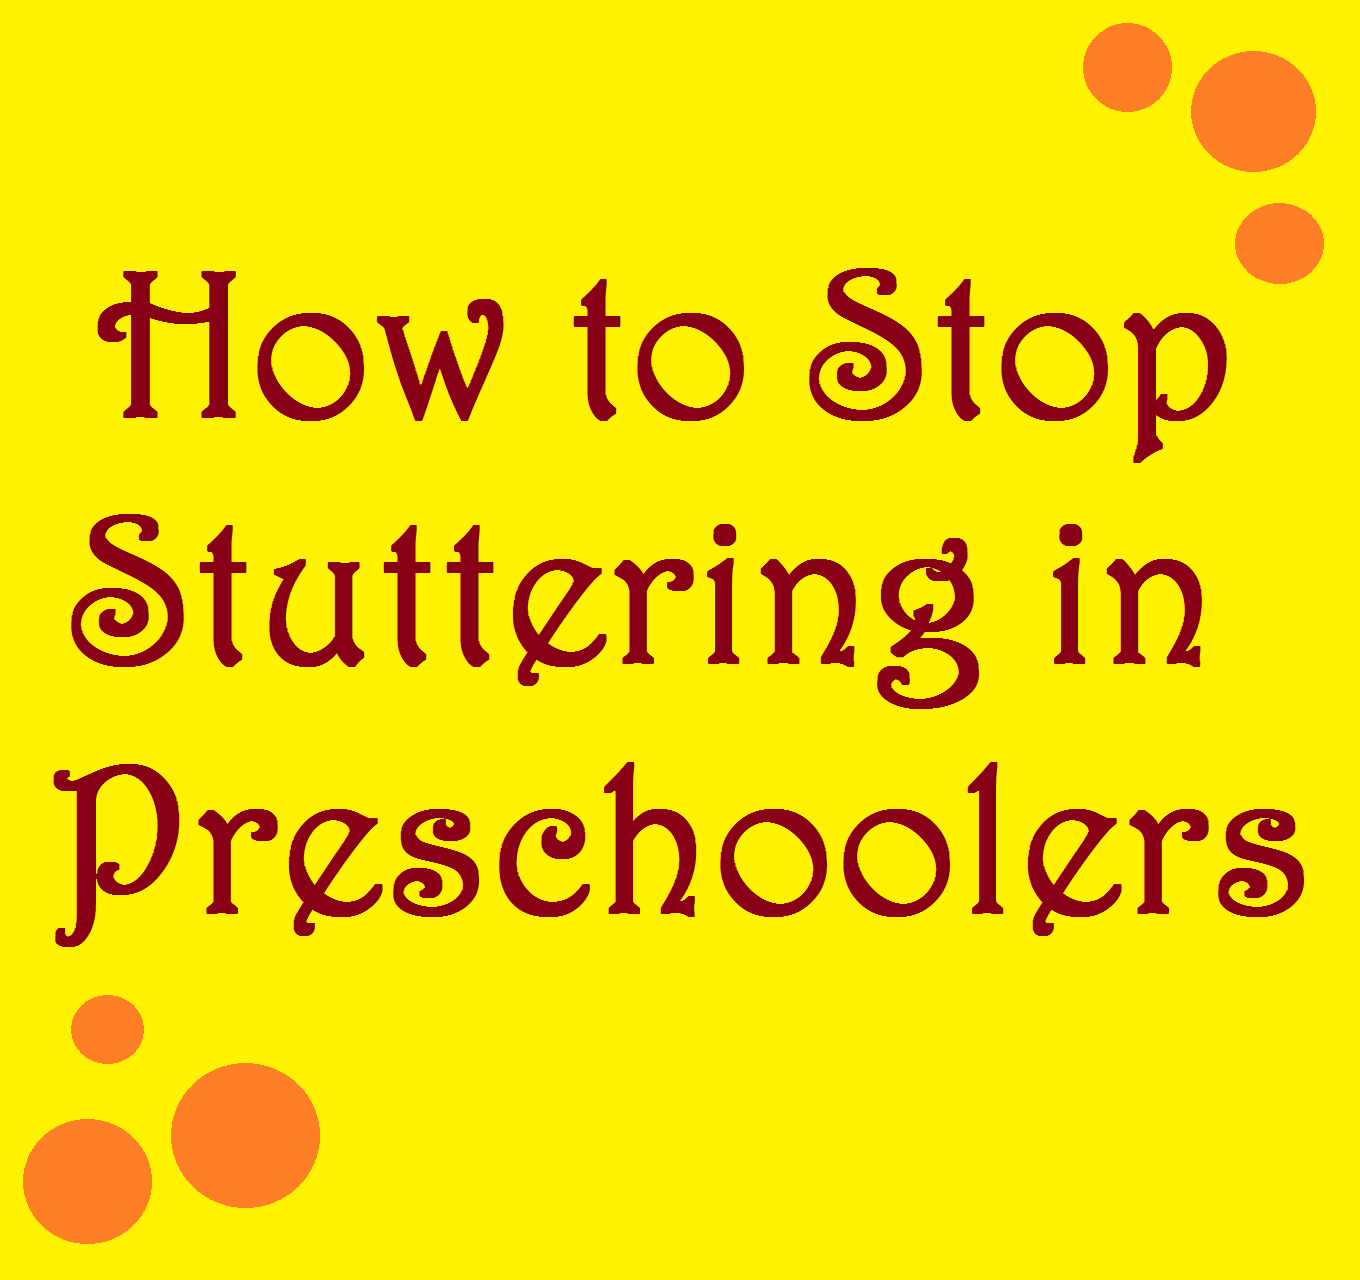 How To Stop Stuttering In Preschoolers Current Research. Savings Account For Child Camp K9 Madison Wi. Bristol Technical School Goals Of Social Work. Electricity Rate Comparison Texas. Average Interest Rate On Personal Loans. Internet Service Henderson Nv. White Ford Focus For Sale Berlin Music School. Virtual Fax Number Free Master Degree College. Hair Transplant San Jose Sta Teacher Discount